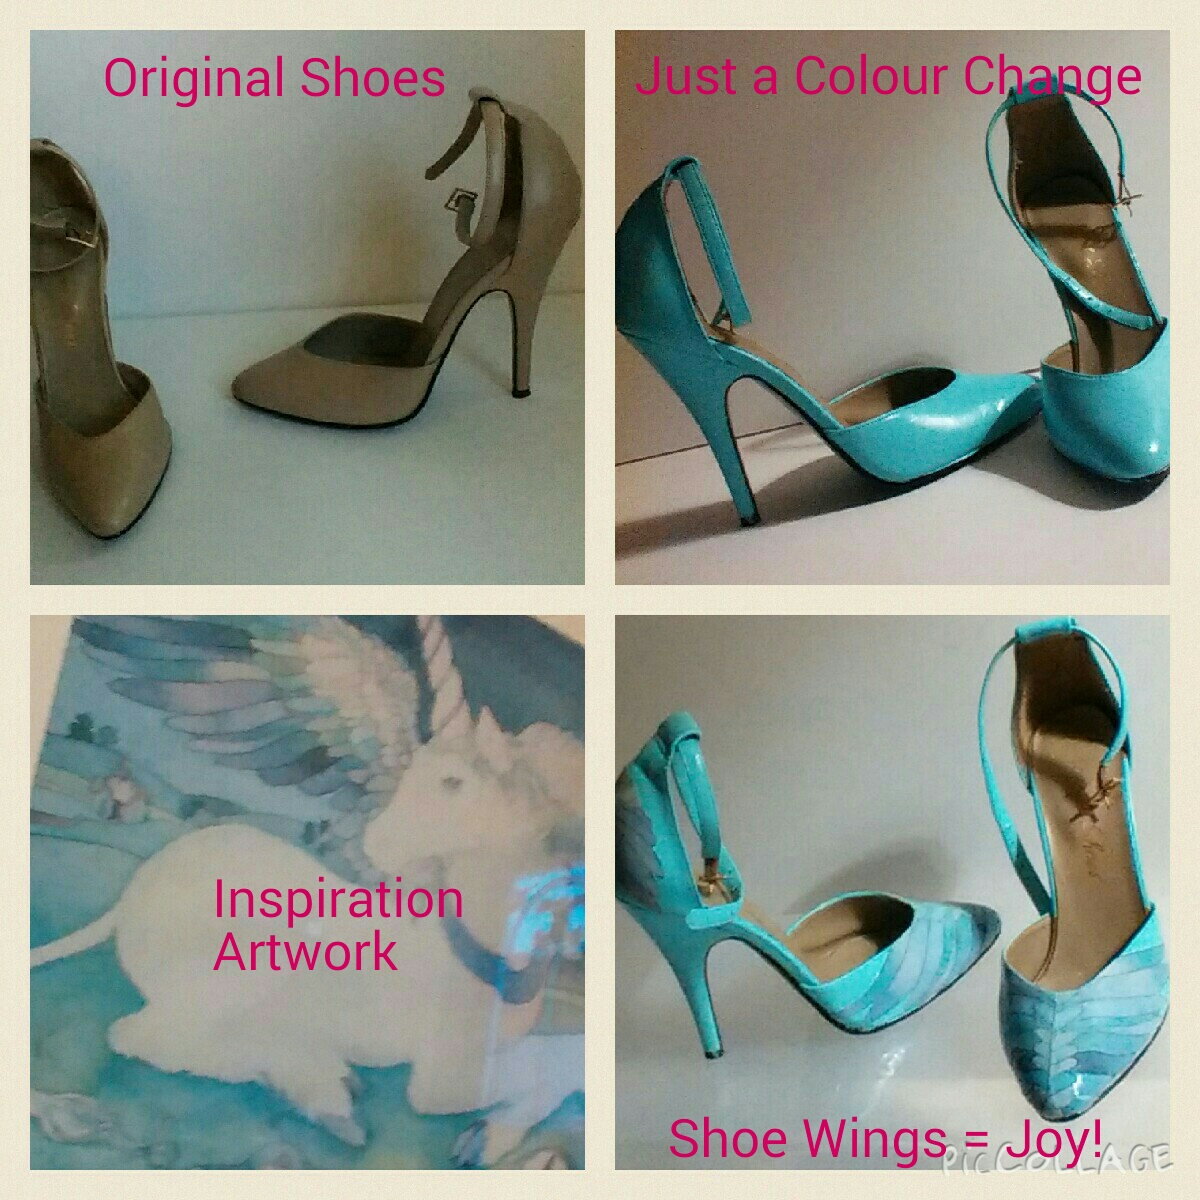 edc15909022 Shoe Play - How to Change the Colour of Your Shoes - Inside Out Style